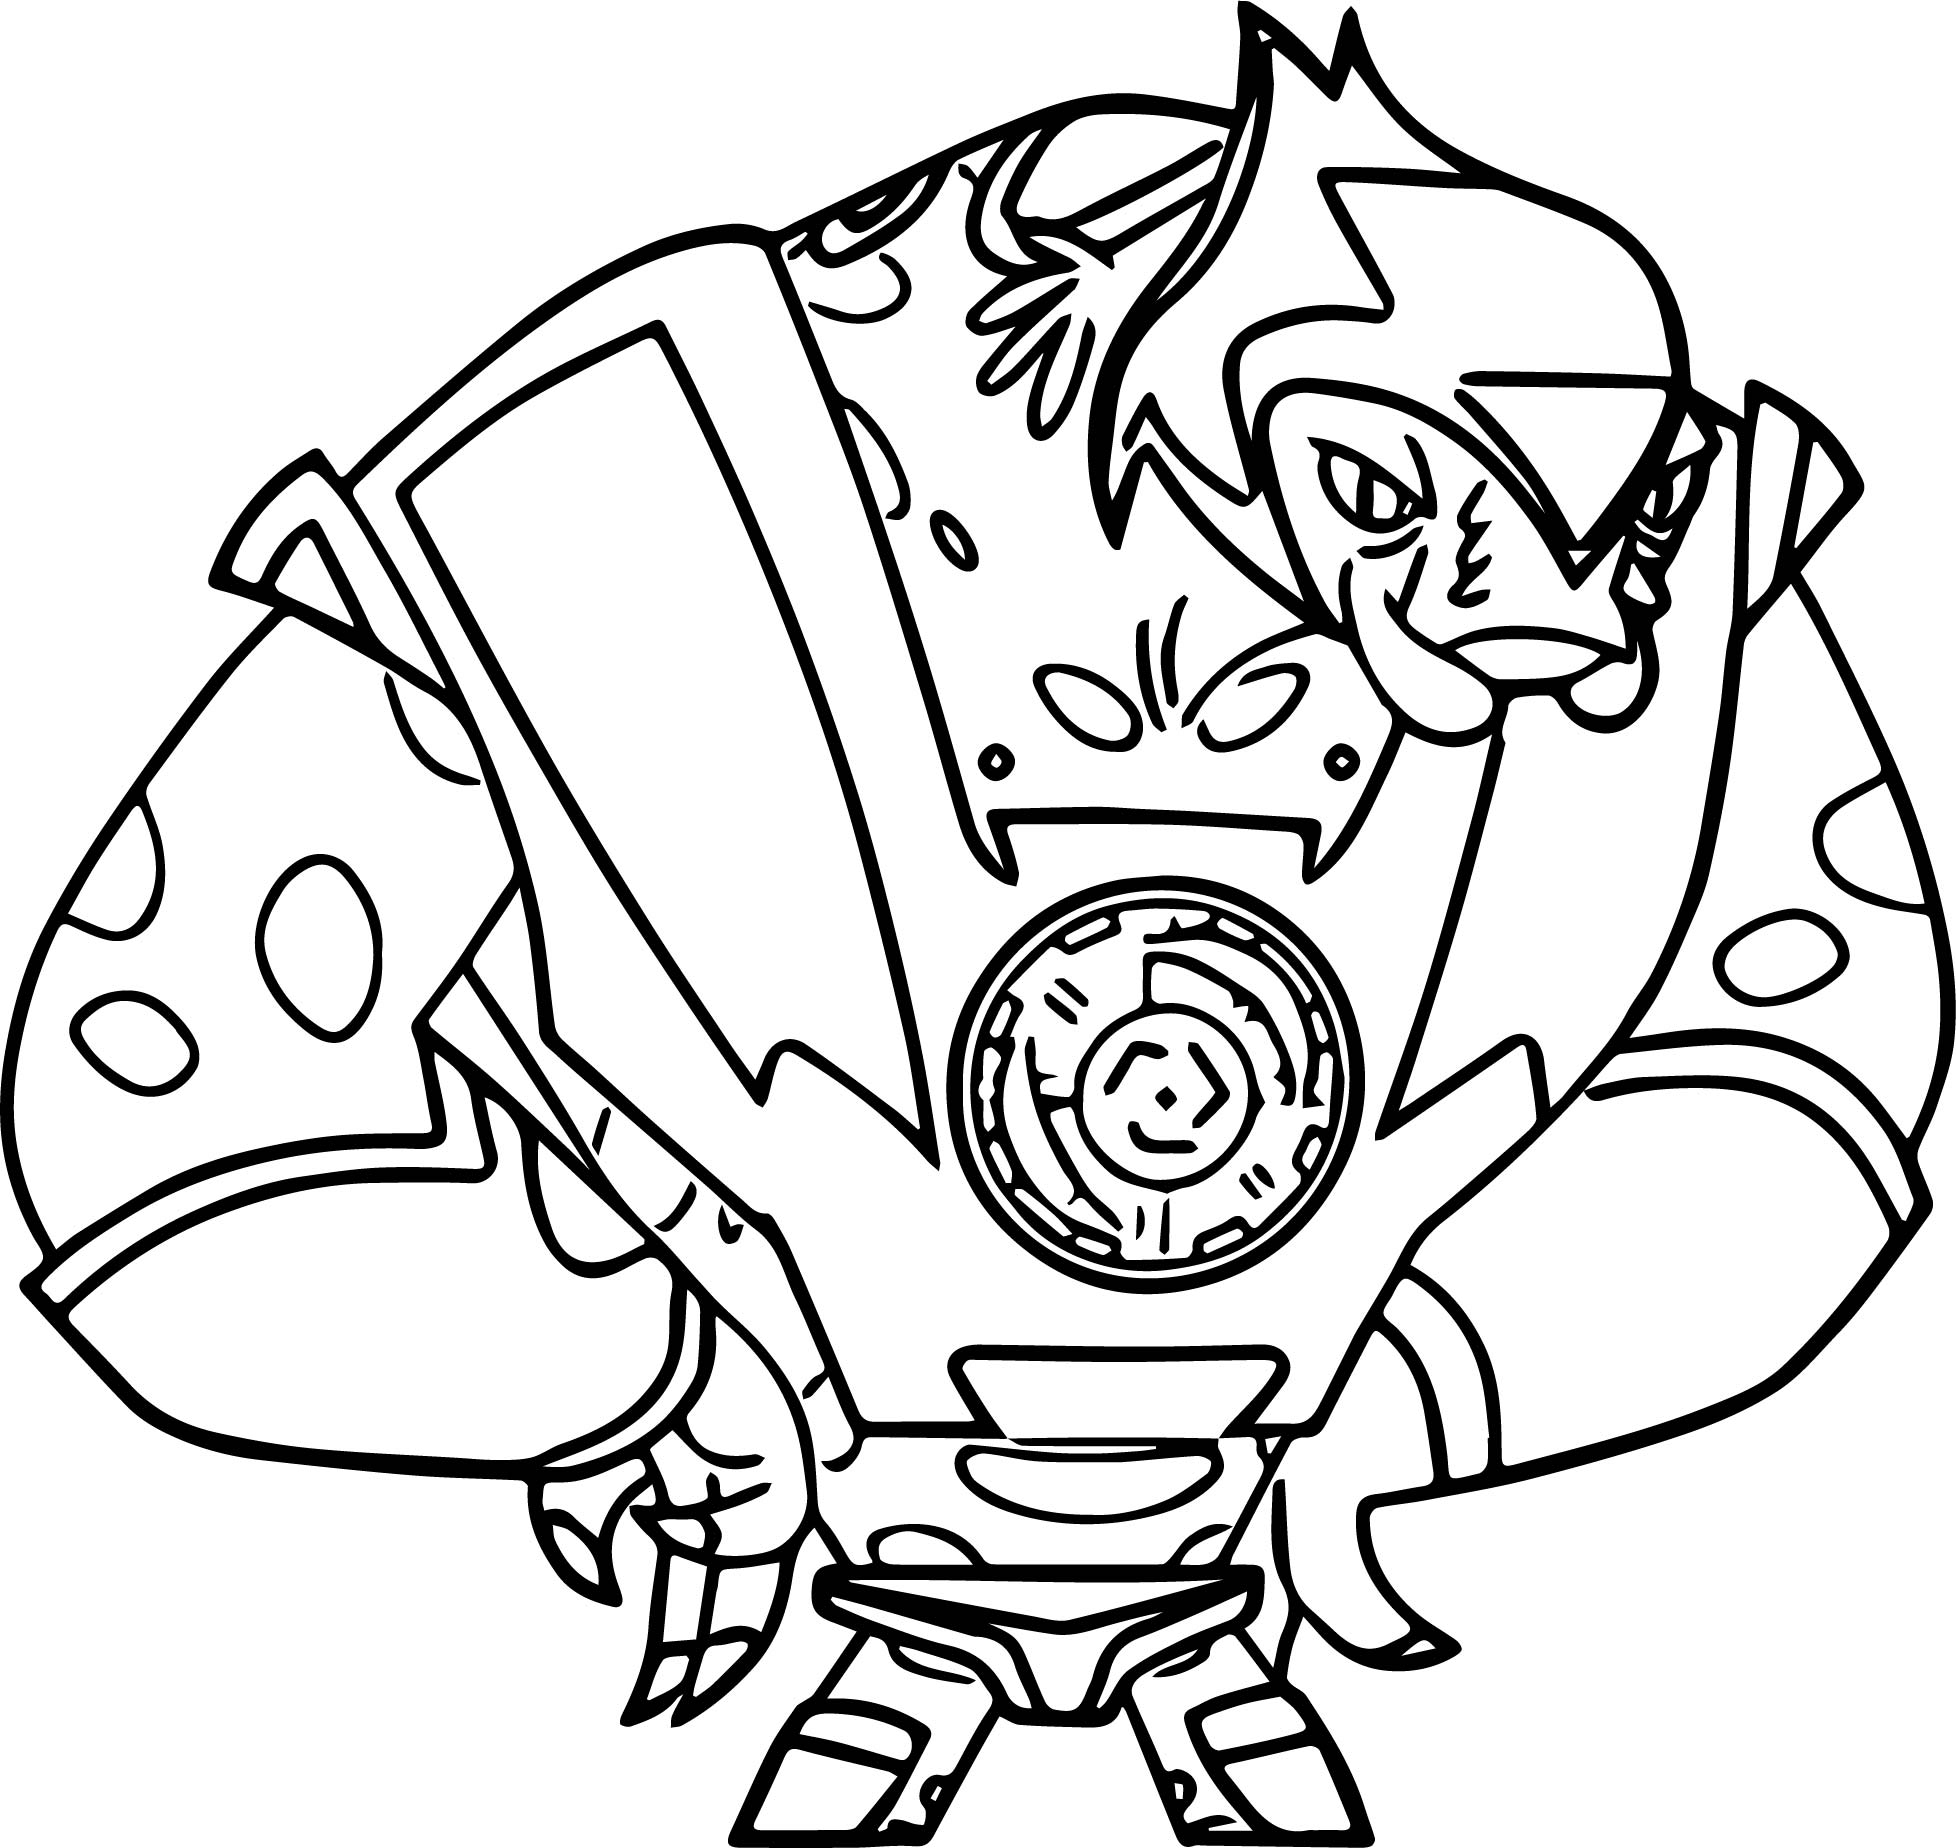 Supernoobs Zenblock Creature Coloring Page